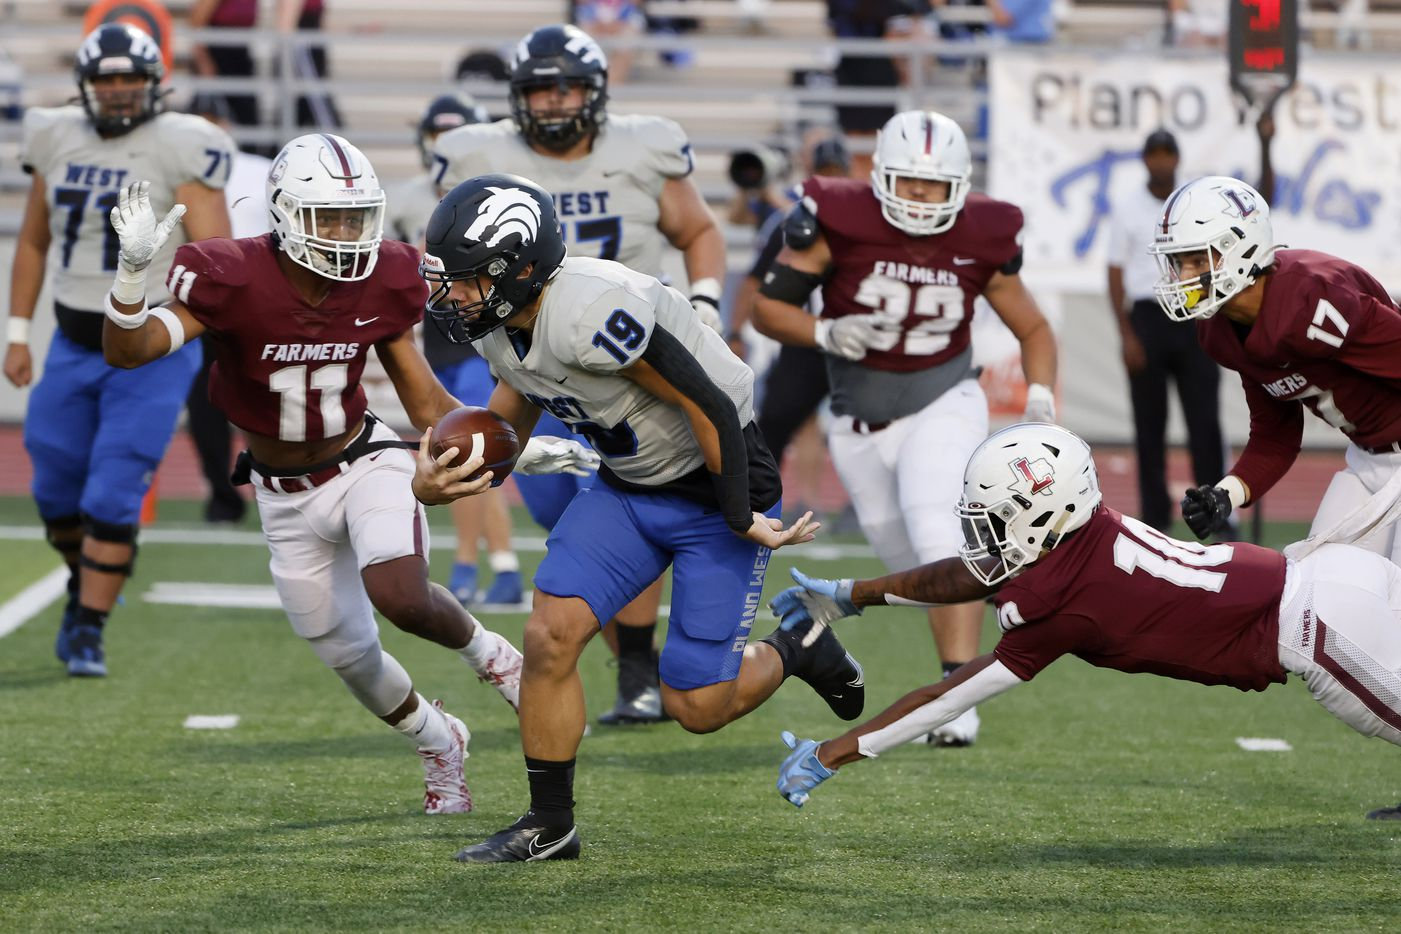 Plane West quarterback Vance Feuerbacher  (19) tries to run past Lewisville defenders Billy Sanford III (11) and Jalen Piece (10) during the first half of a high school football game in Lewisville, Texas on Friday, Sept. 24, 2021. (Michael Ainsworth/Special Contributor)